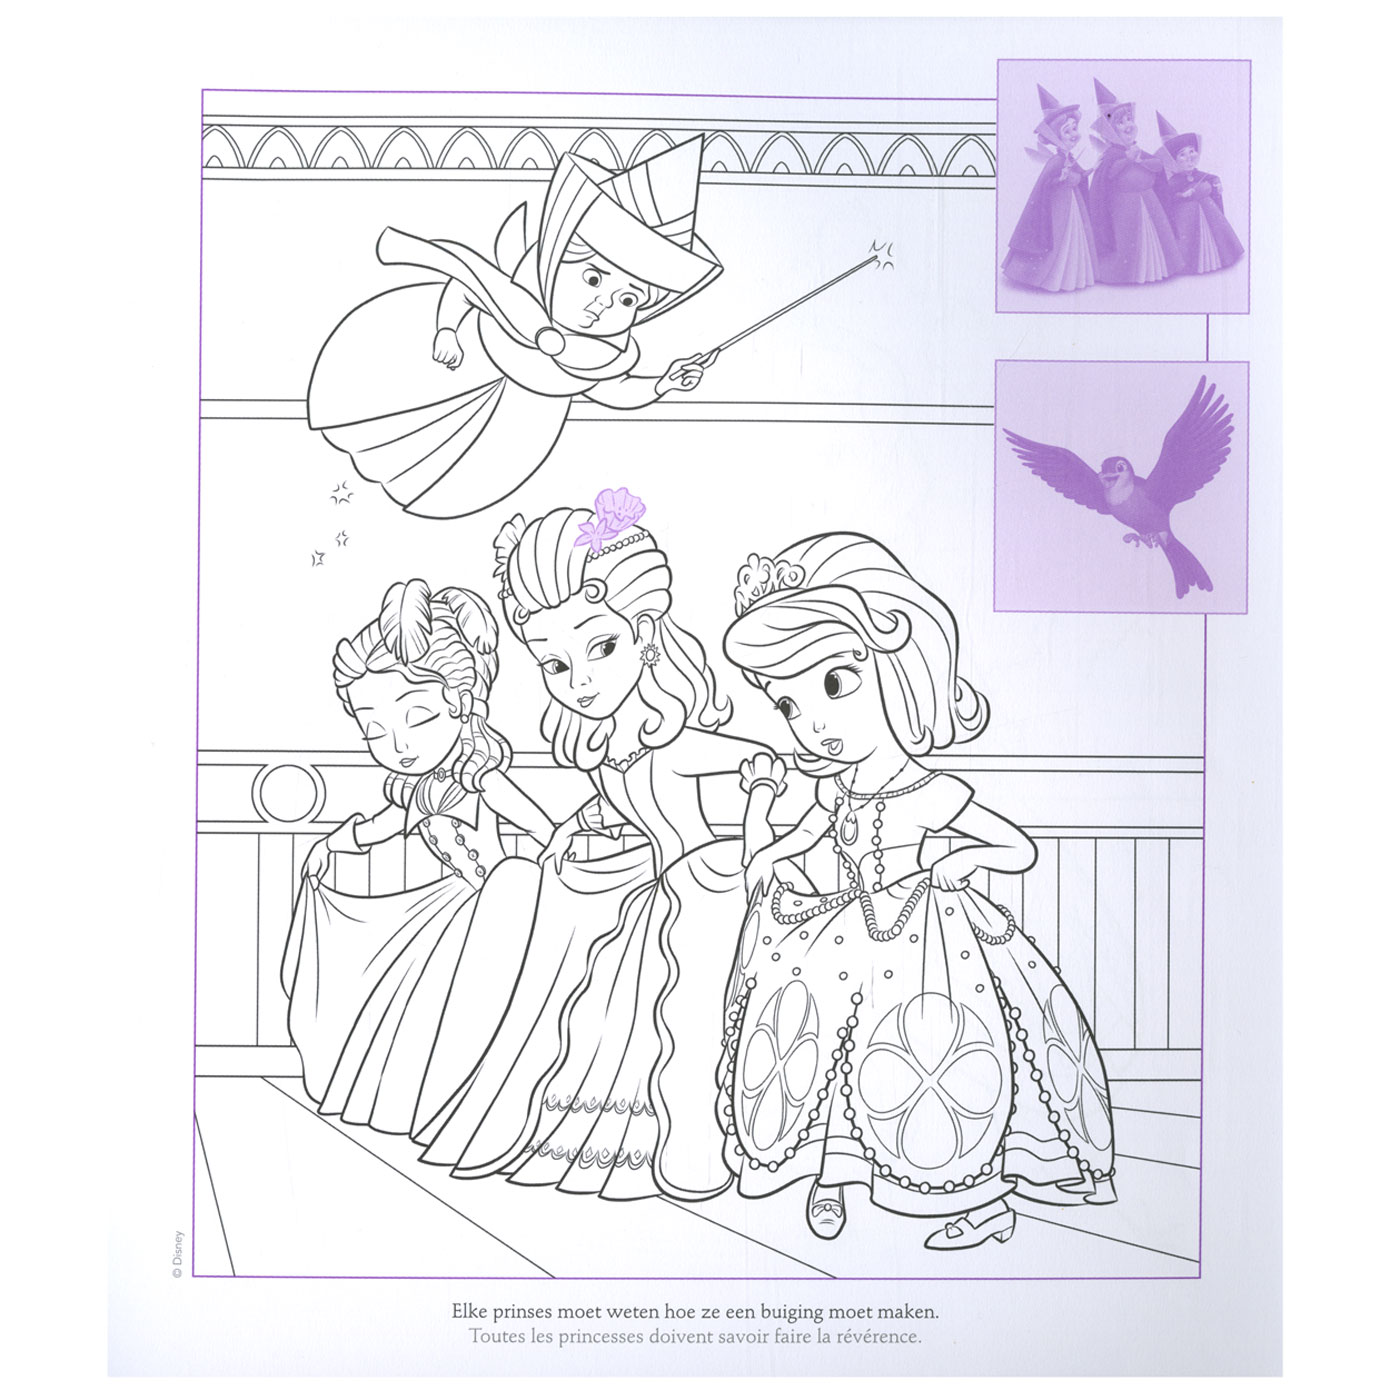 The First Kleurplaat Sofia The First Pictures To Pin On